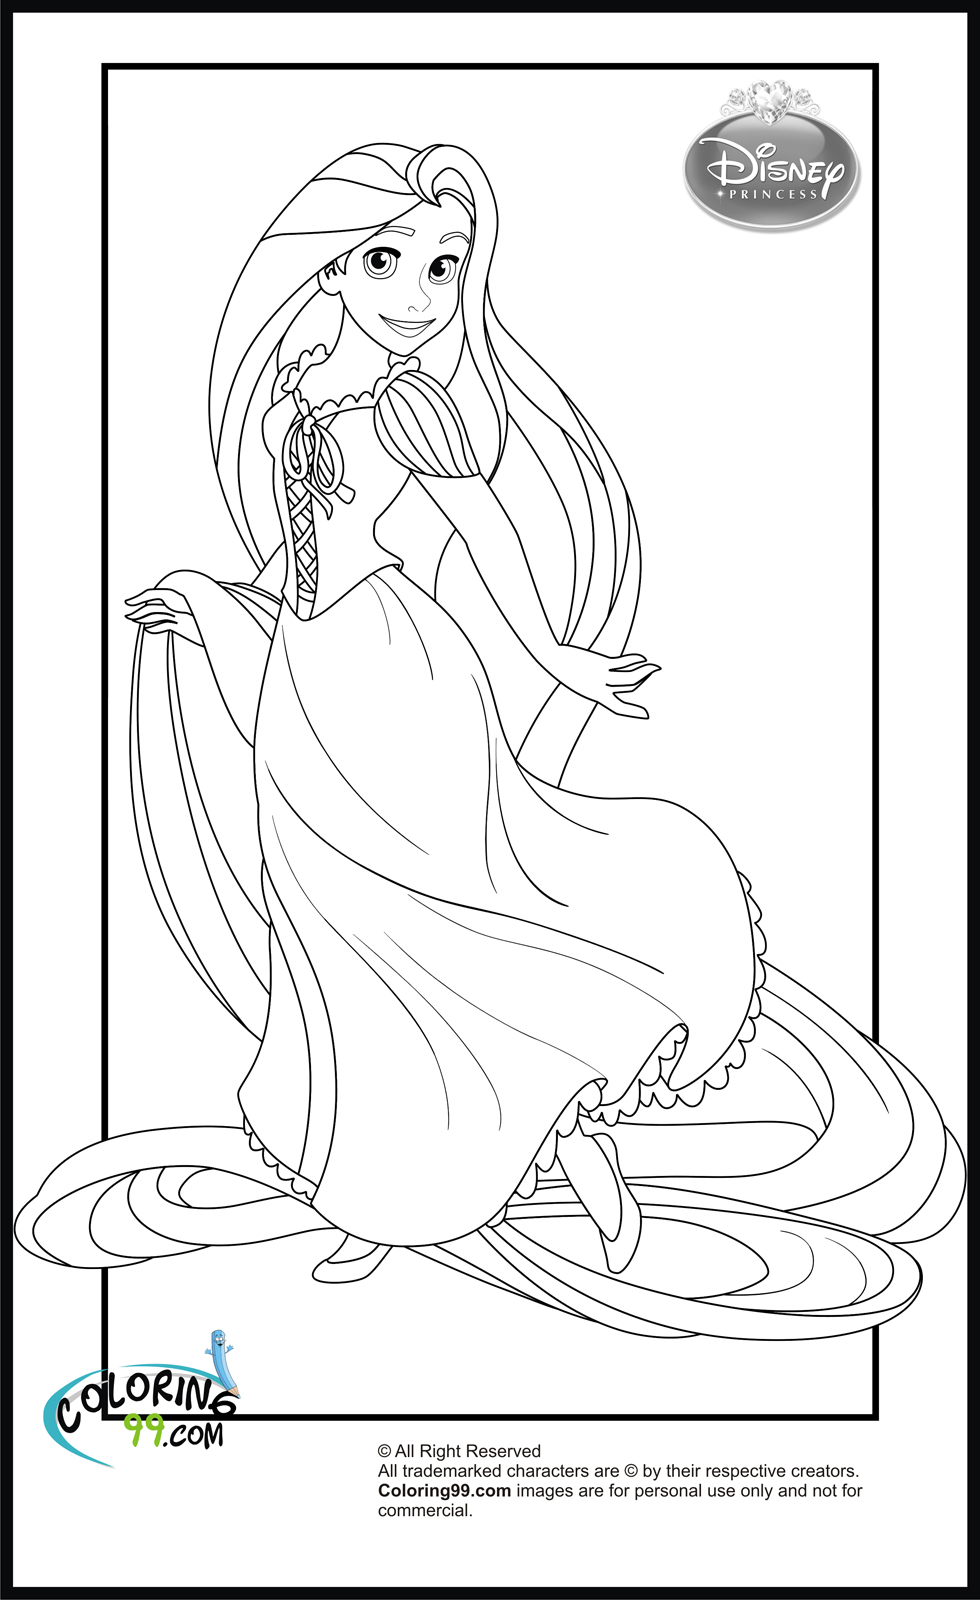 Disney Princess Coloring Pages | Team colors | colouring pages for disney princesses